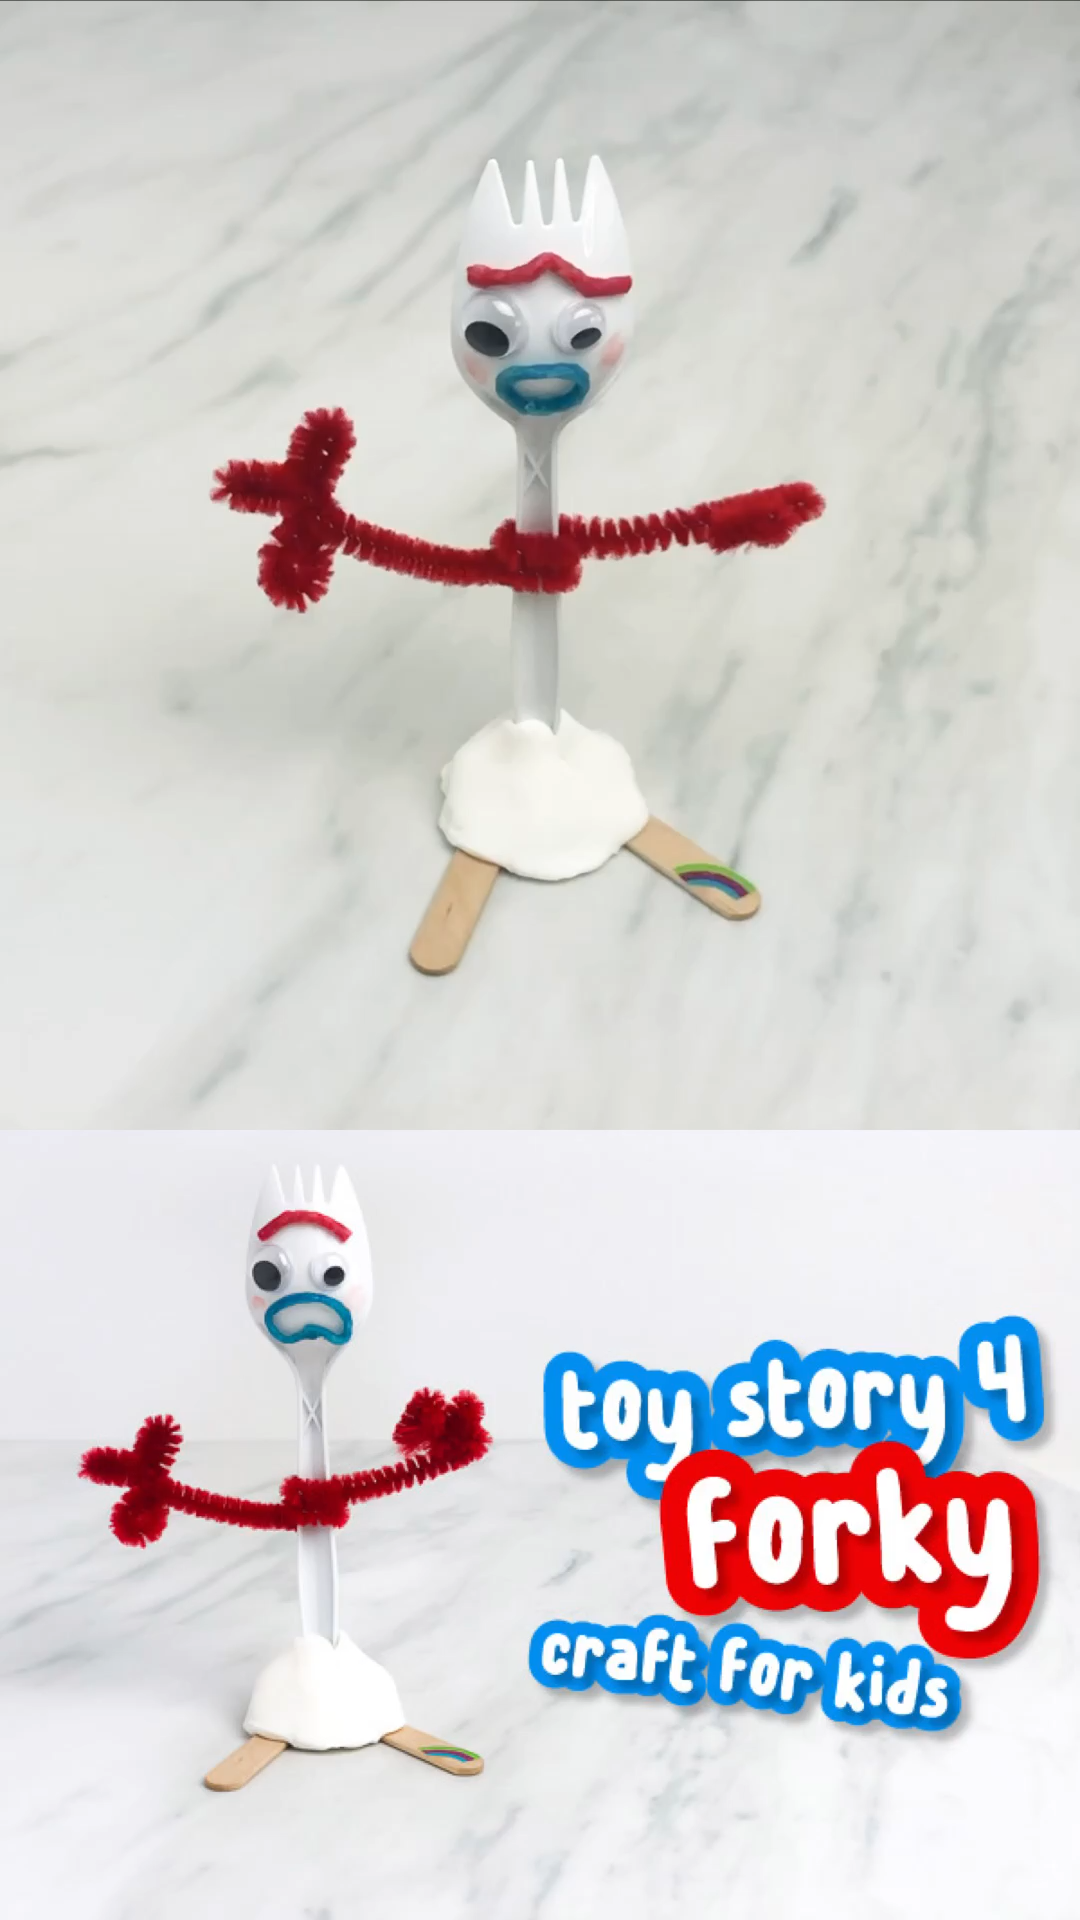 Disney Craft For Kids | Learn how to make this simple and fun Forky toy from Disney Pixar's Toy Story 4! This is an easy activity for kids of all ages from preschool to  kindergarten to elementary students and it's great for Disney fans!!  #kids #kidscrafts #craftsforkids #disney #disneykids #disneycrafts #ideasforkids #kidsandparenting #toystory4 #toystory #kidsactivities #activitiesforkids #preschoolers #kindergarten #elementary #ece #earlychildhood #disneyfans #sensoryplay #diyforkids